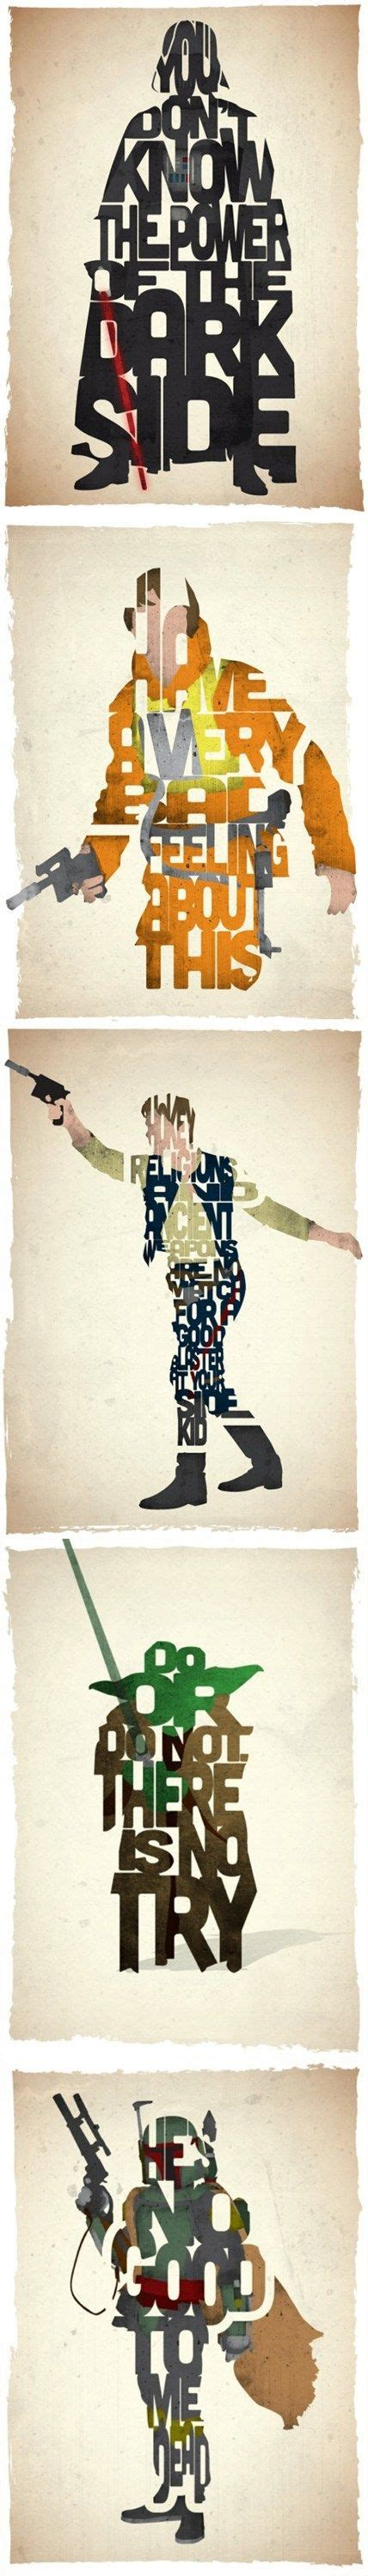 typographic star wars prints featuring iconic characters 136 best star wars programs images on pinterest star